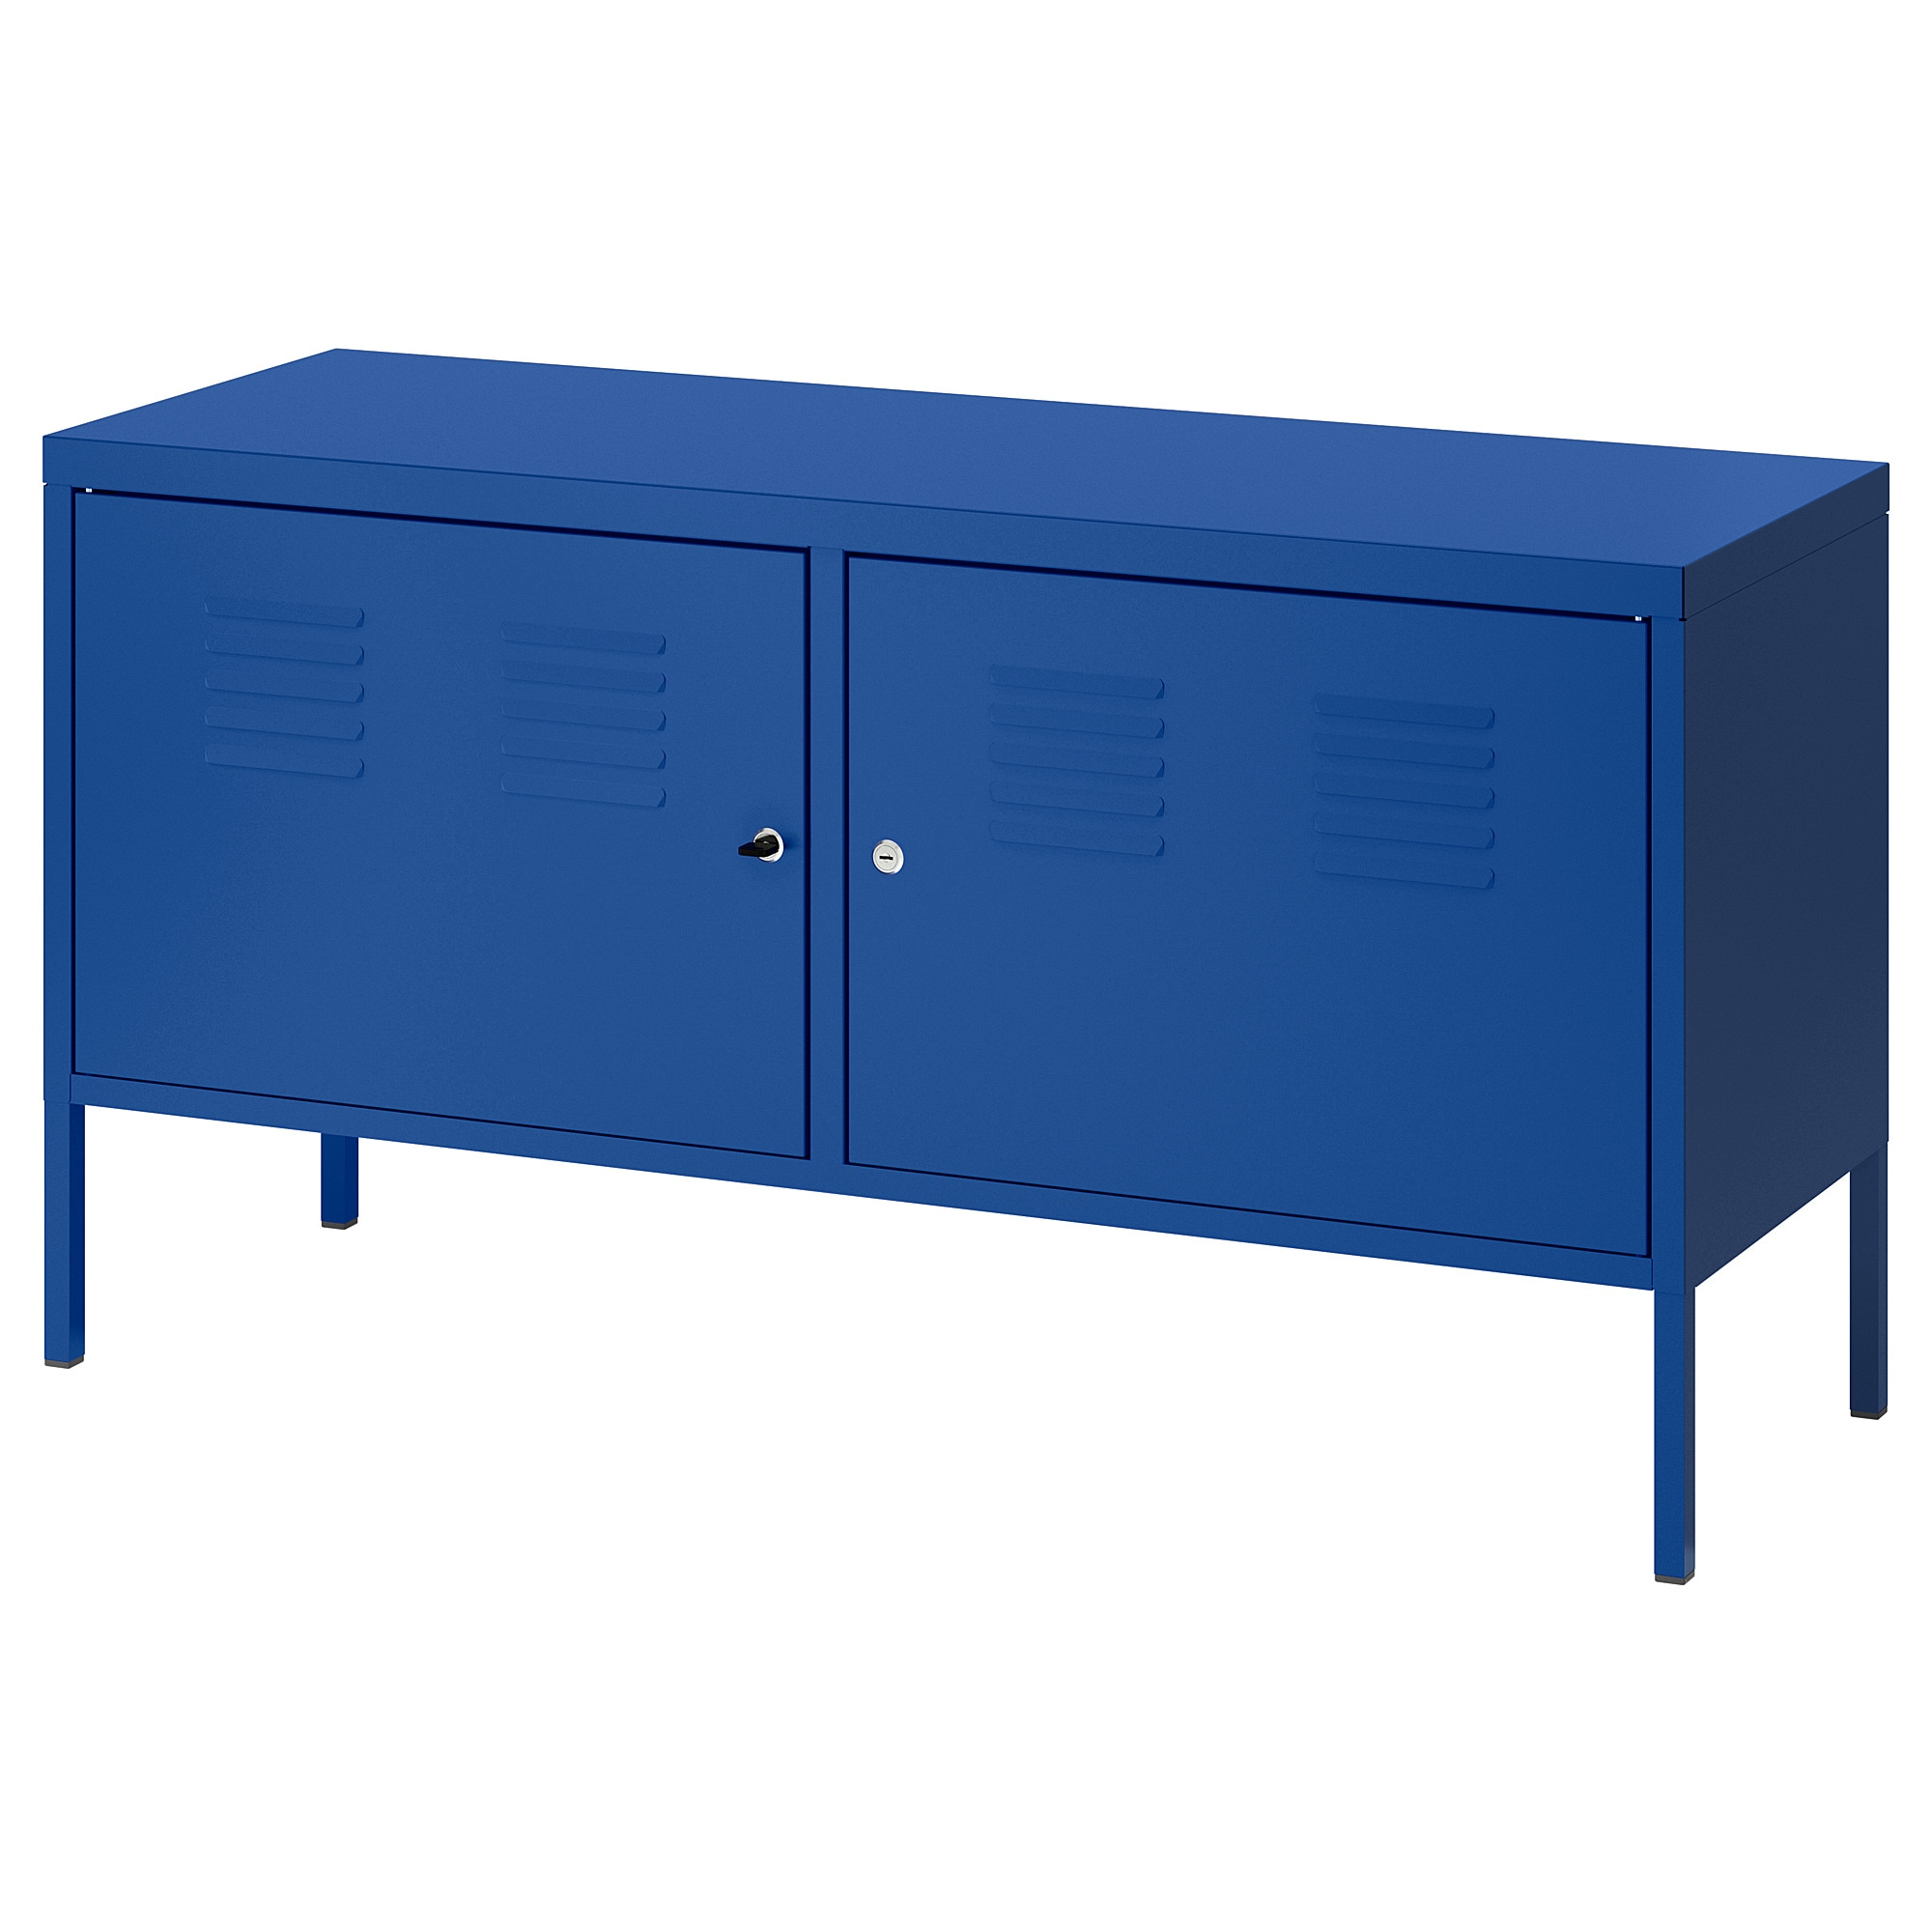 Exceptionnel IKEA PS Cabinet   Blue   IKEA